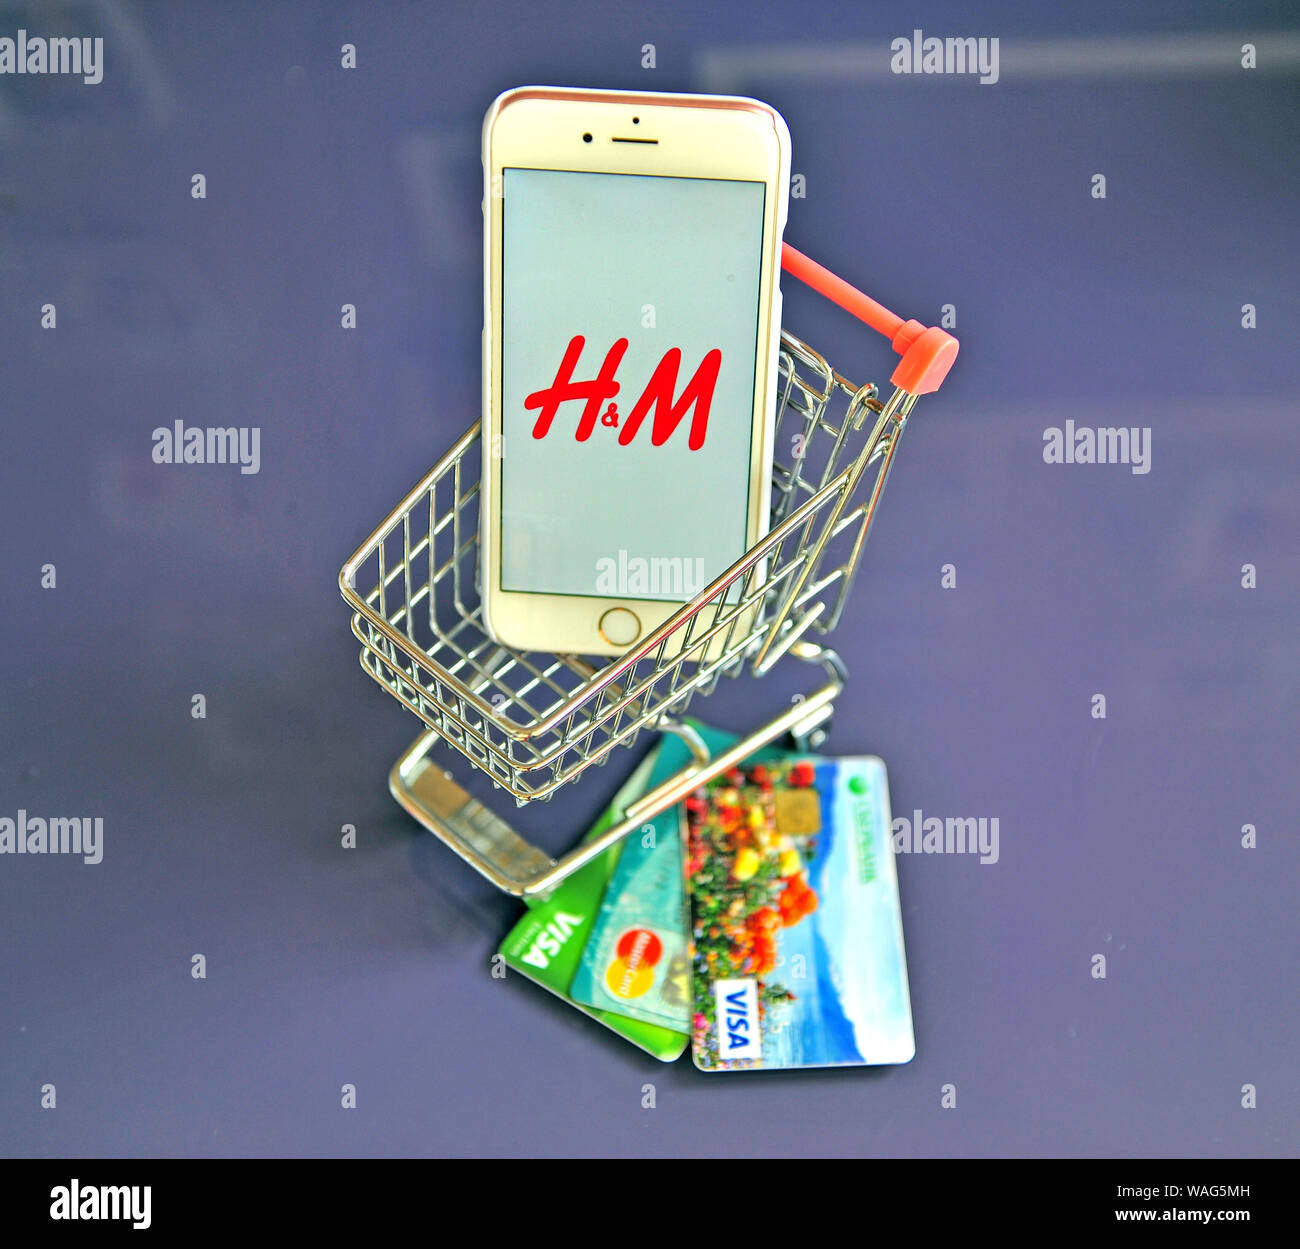 Yaroslavl, Russia - AUgust 20, 2019: Smartphone with H&M logo in shopping cart and credit cards on the table. Stock Photo